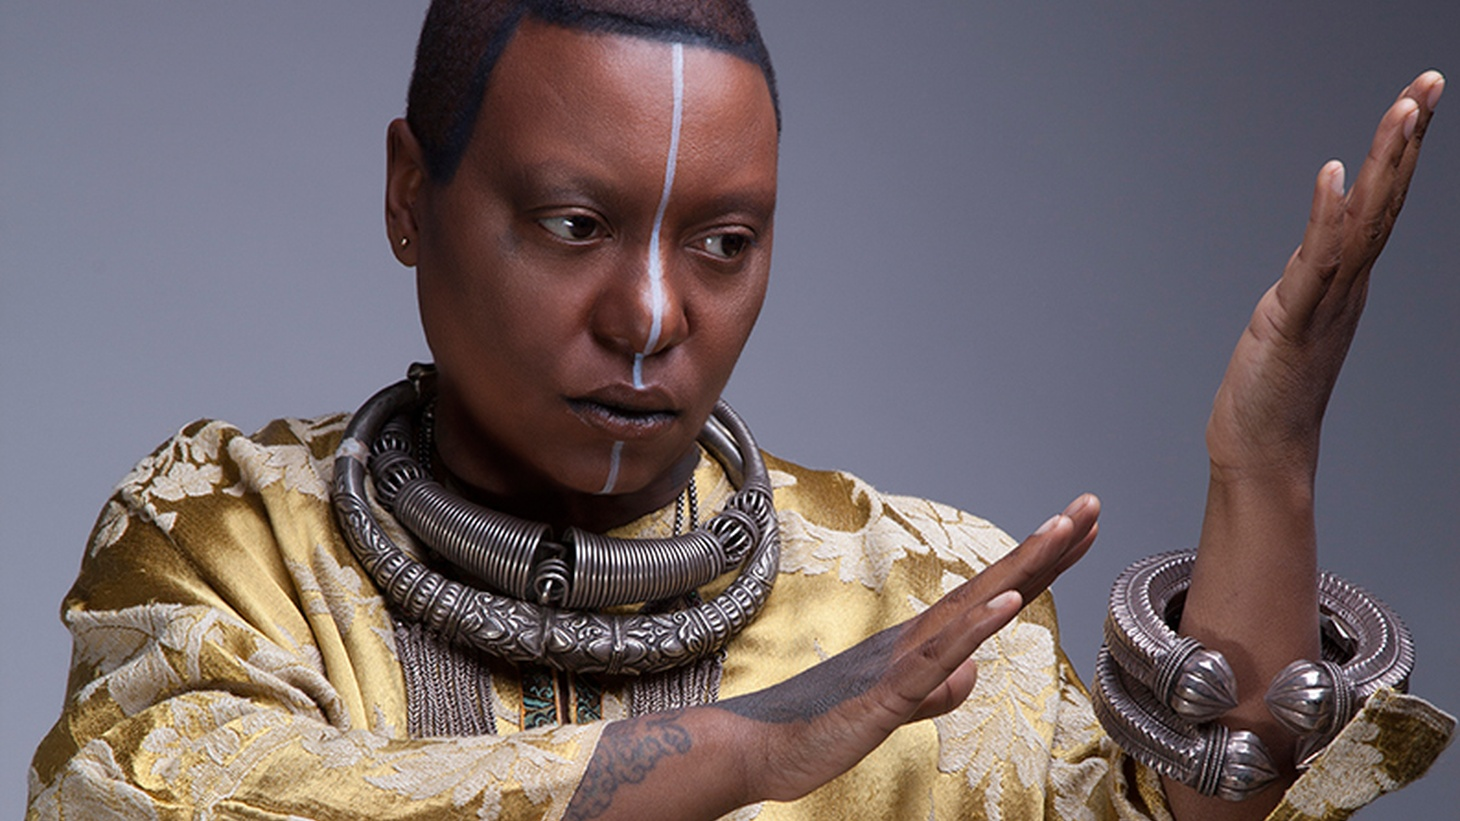 Bassist and songwriter Meshell Ndegeocello returns with her 11 th album. It's meditative, melodic and moody.